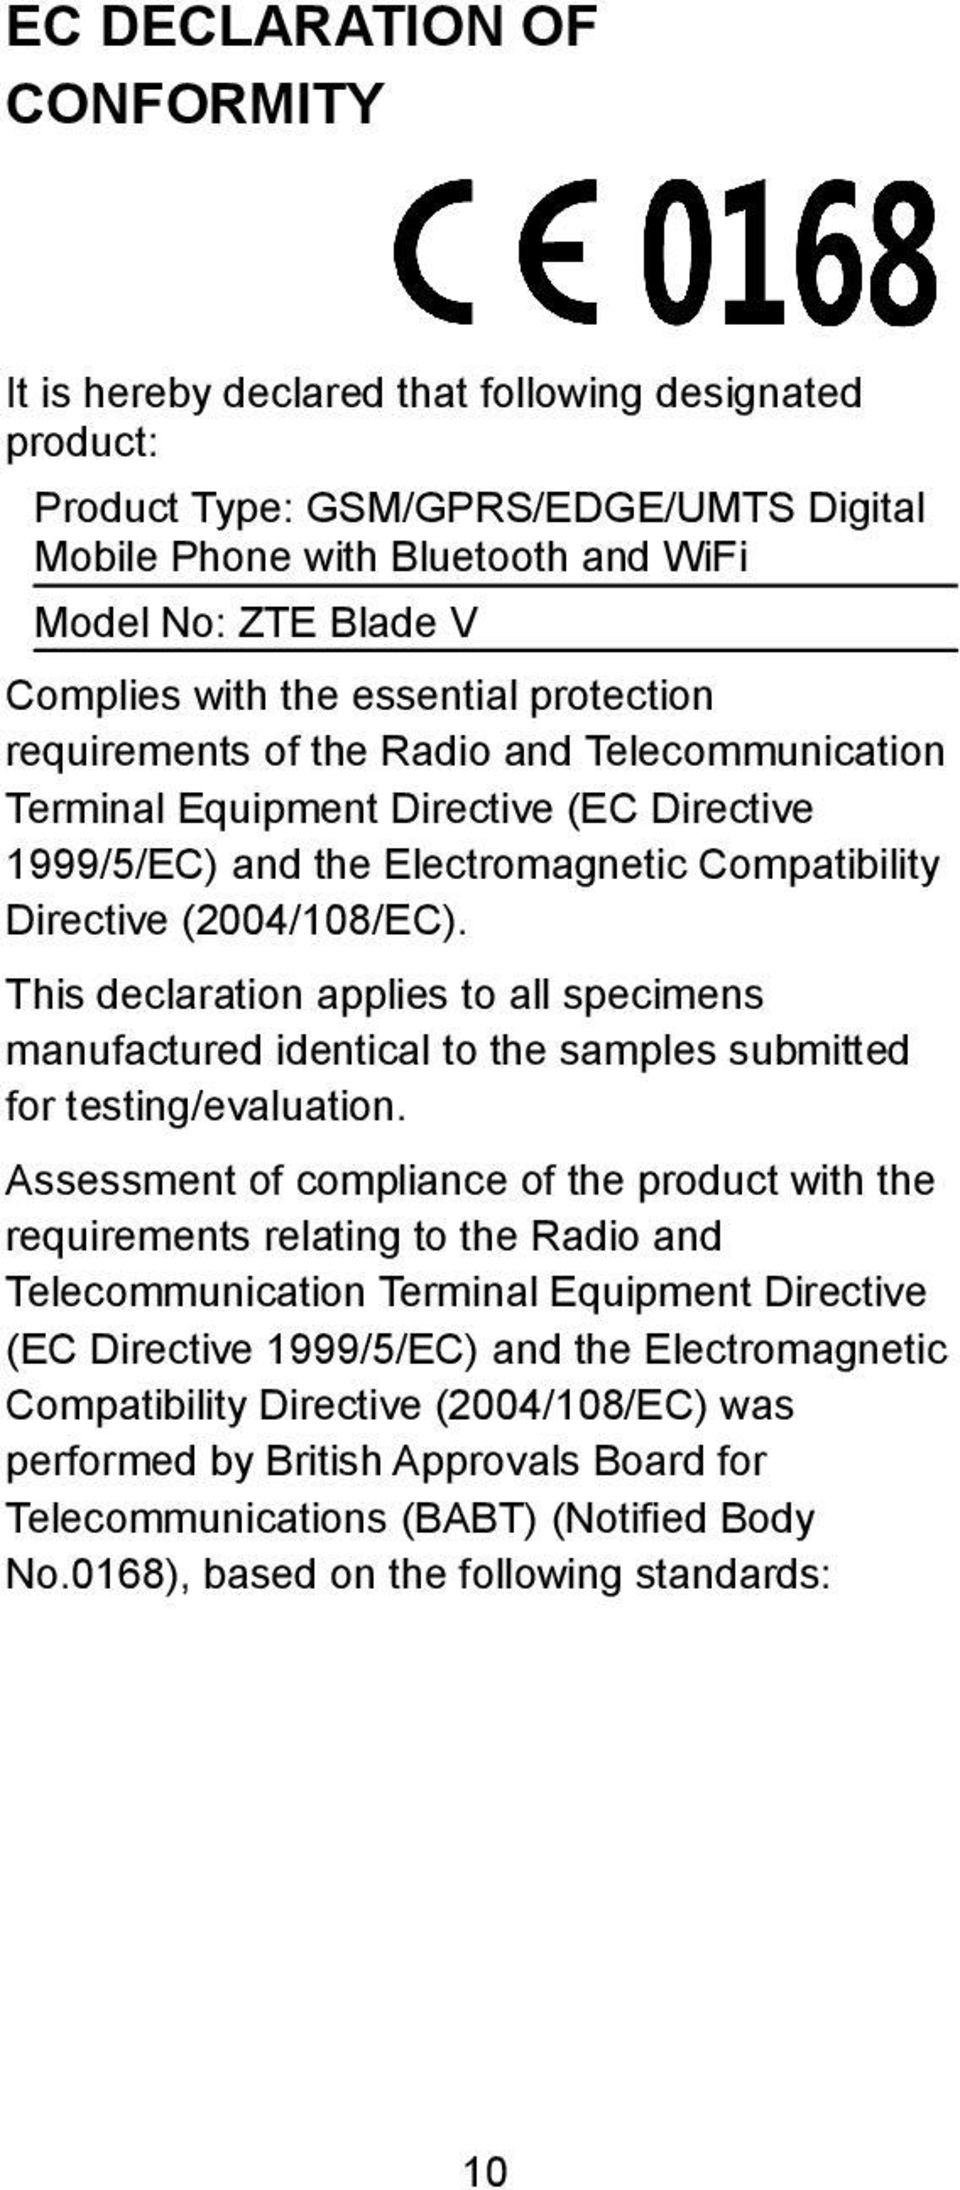 This declaration applies to all specimens manufactured identical to the samples submitted for testing/evaluation.